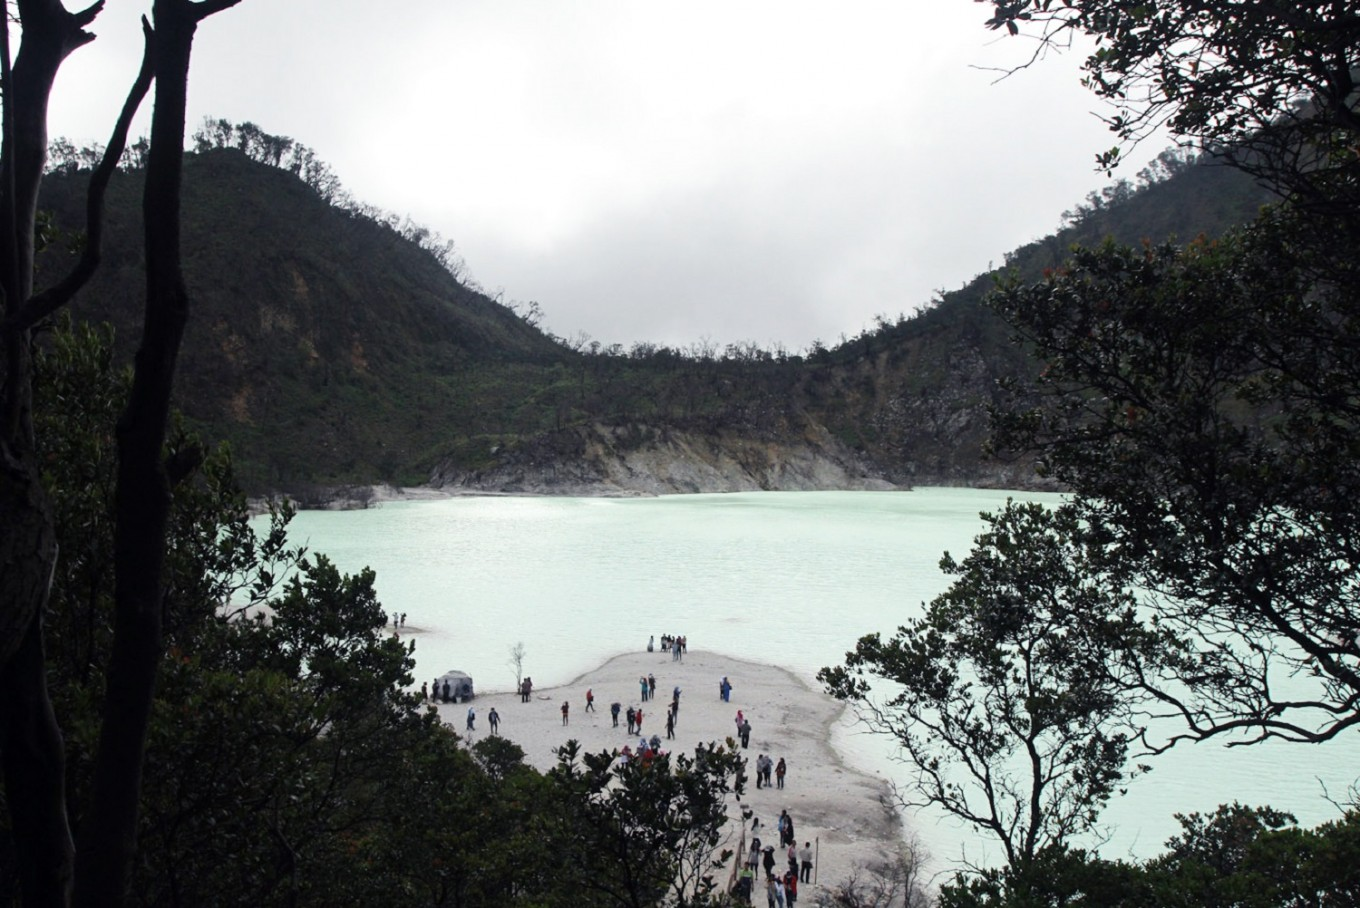 Kawah Putih is a recommended tourist attraction in Bandung, West Java.